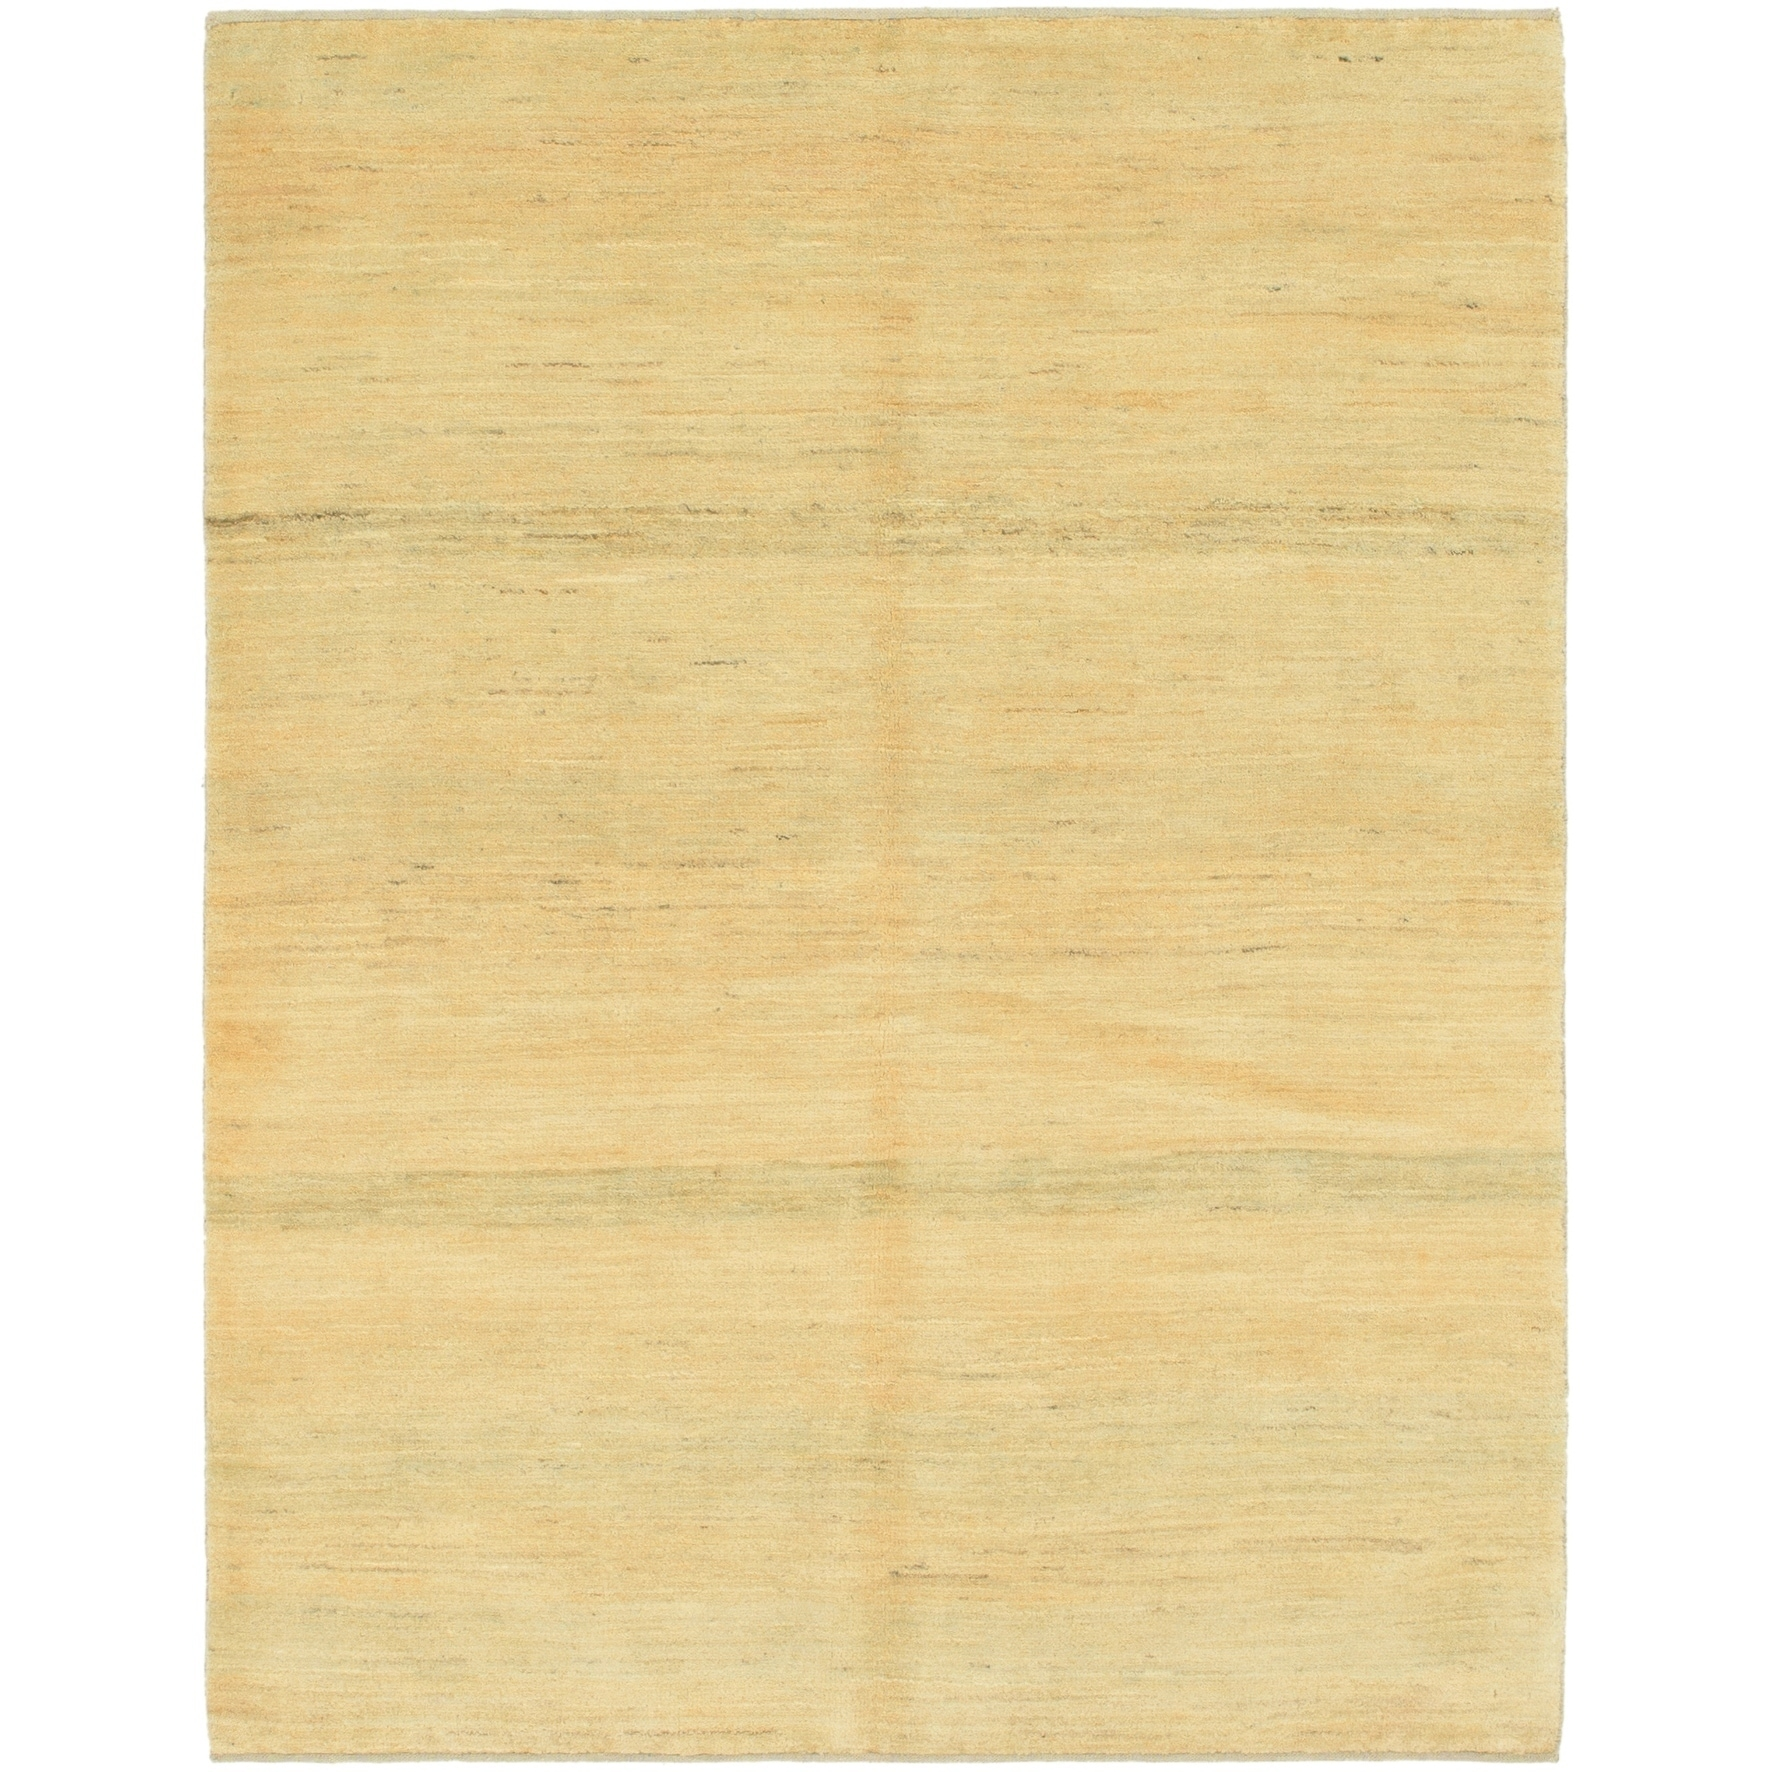 Hand Knotted Kashkuli Gabbeh Wool Area Rug - 5 x 6 7 (Gold - 5 x 6 7)